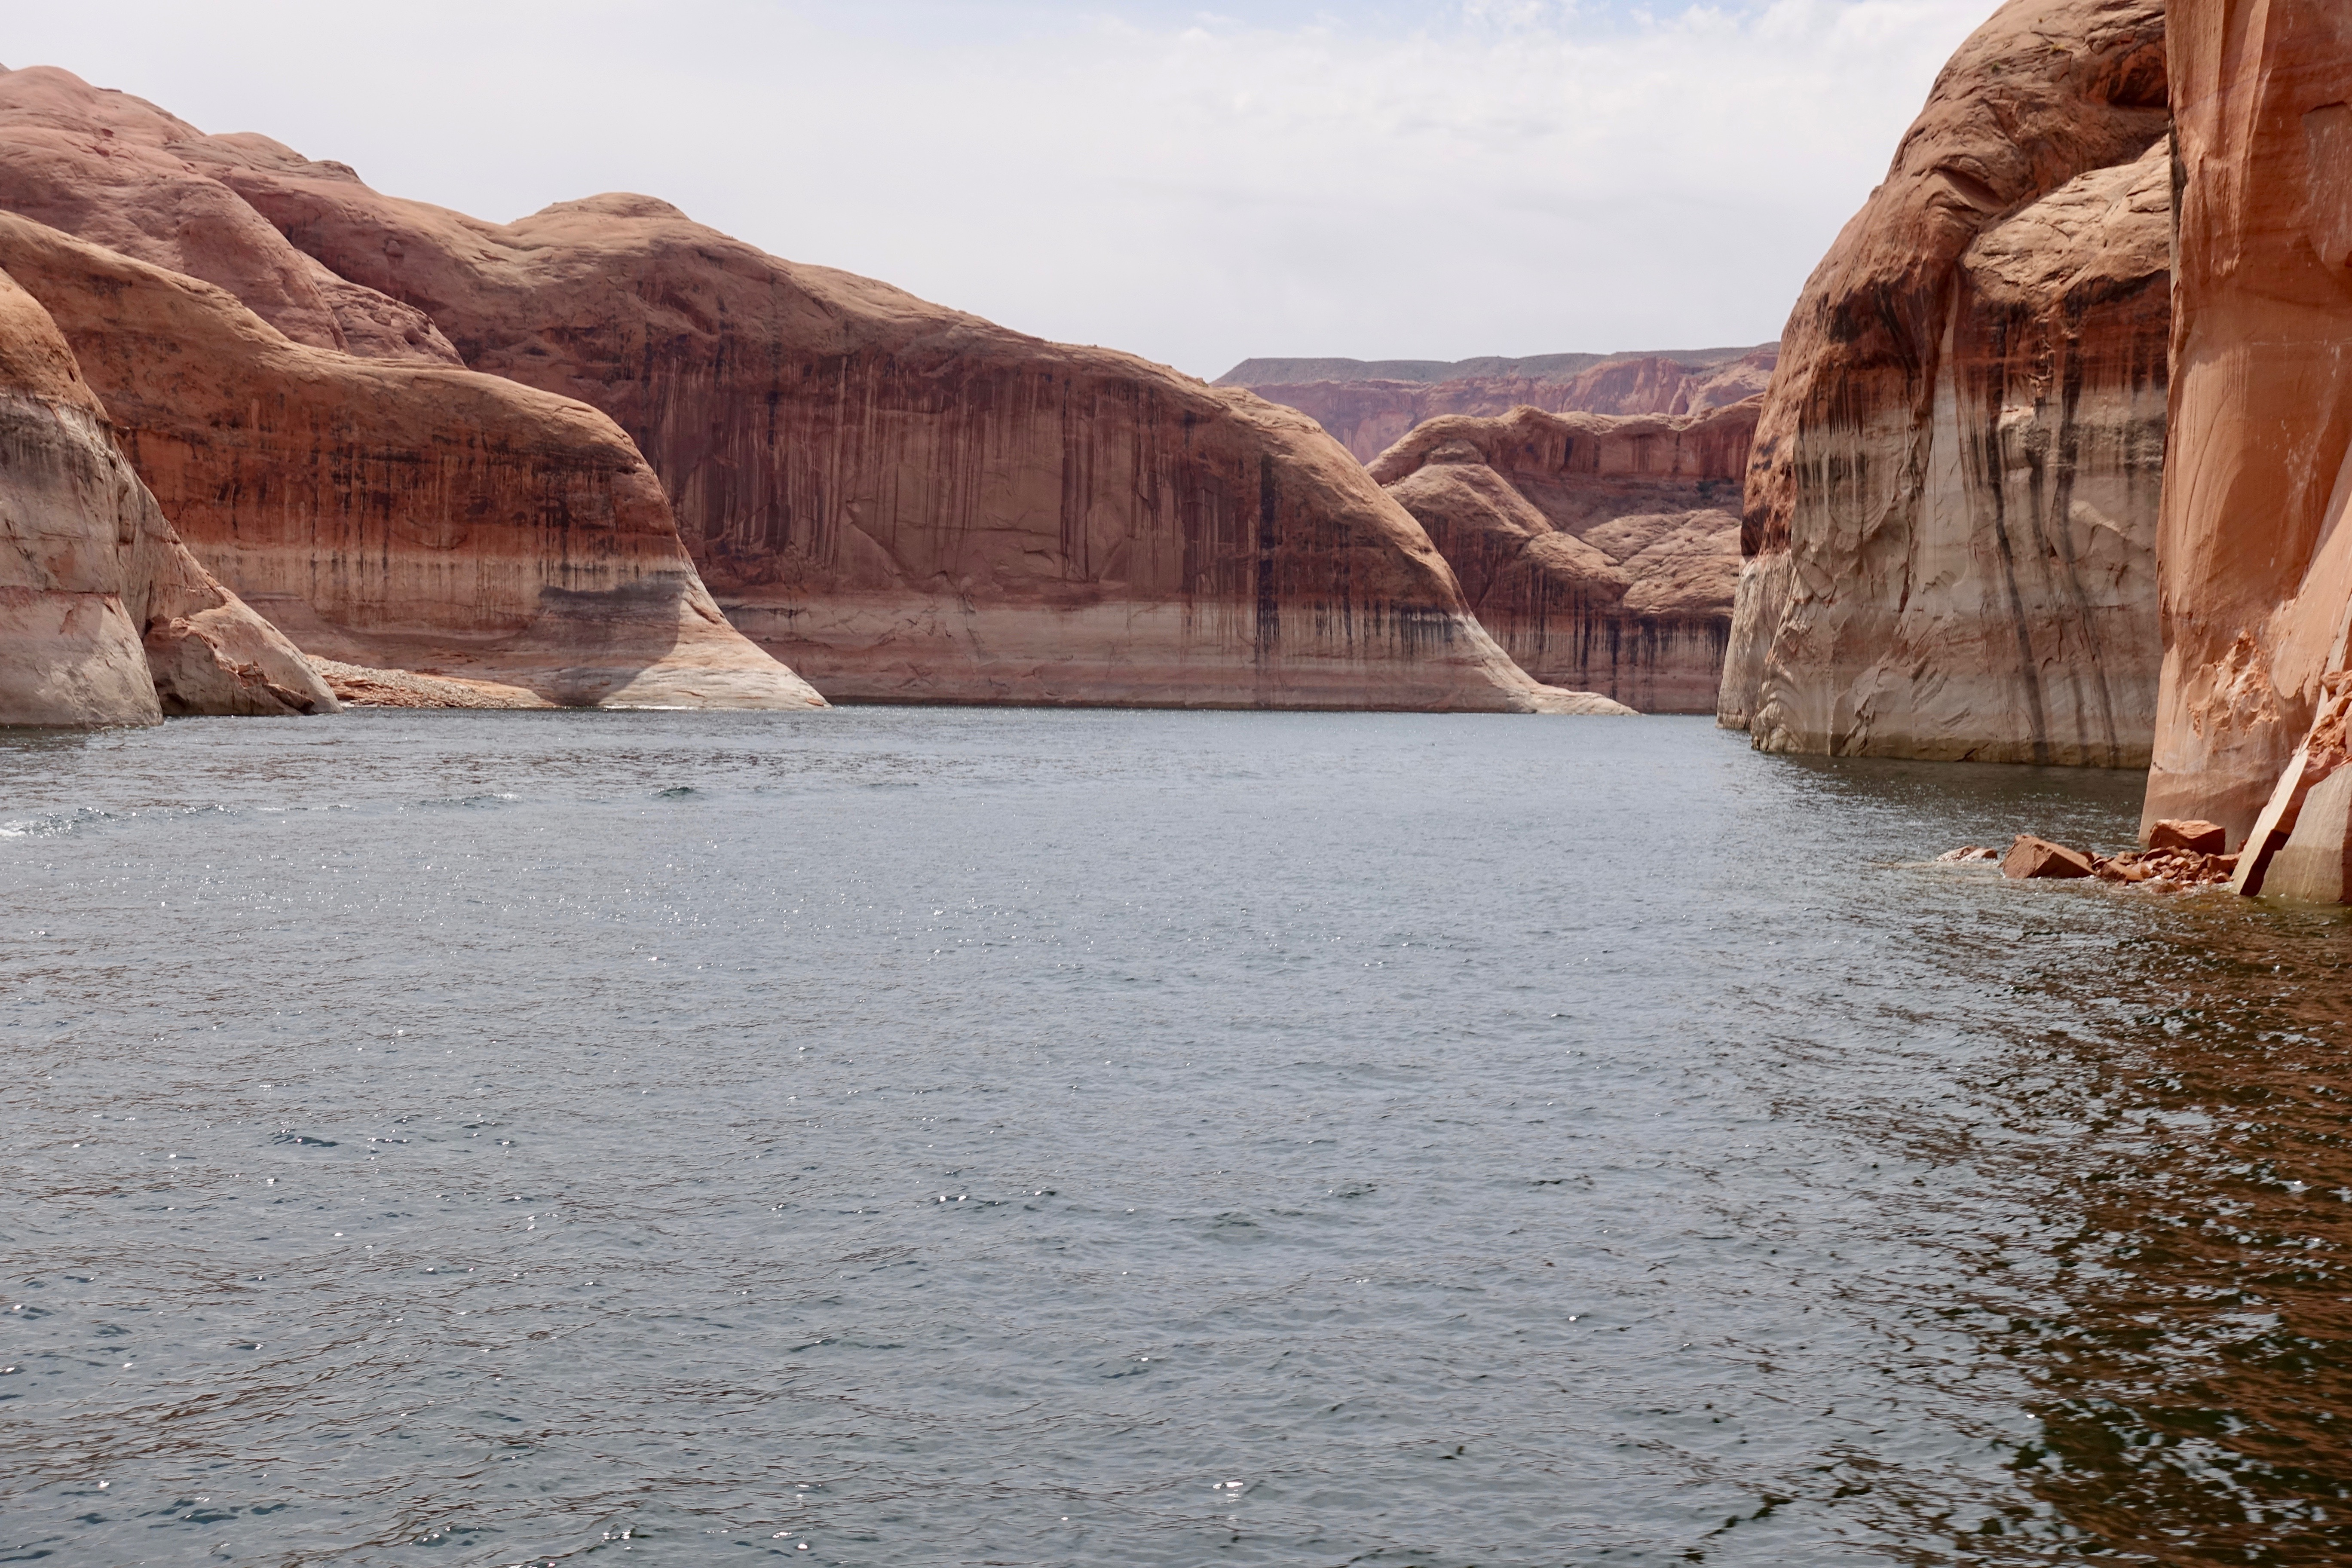 Bathtub Ring Around Lake Powell - EPOD - a service of USRA